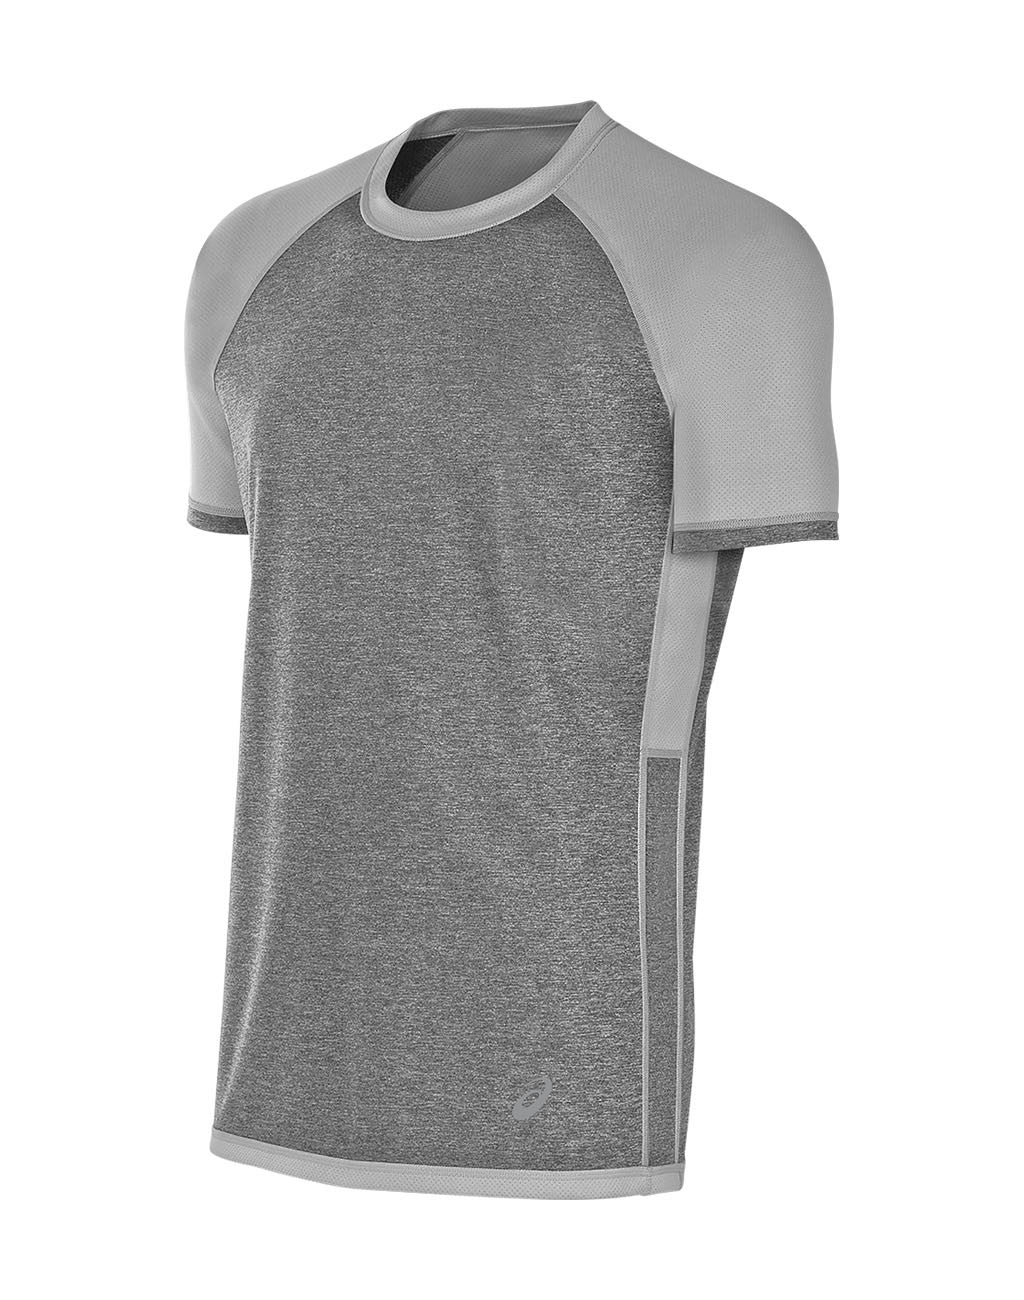 ASICS Reversible Short Sleeve Tee (Men's)S_master_image